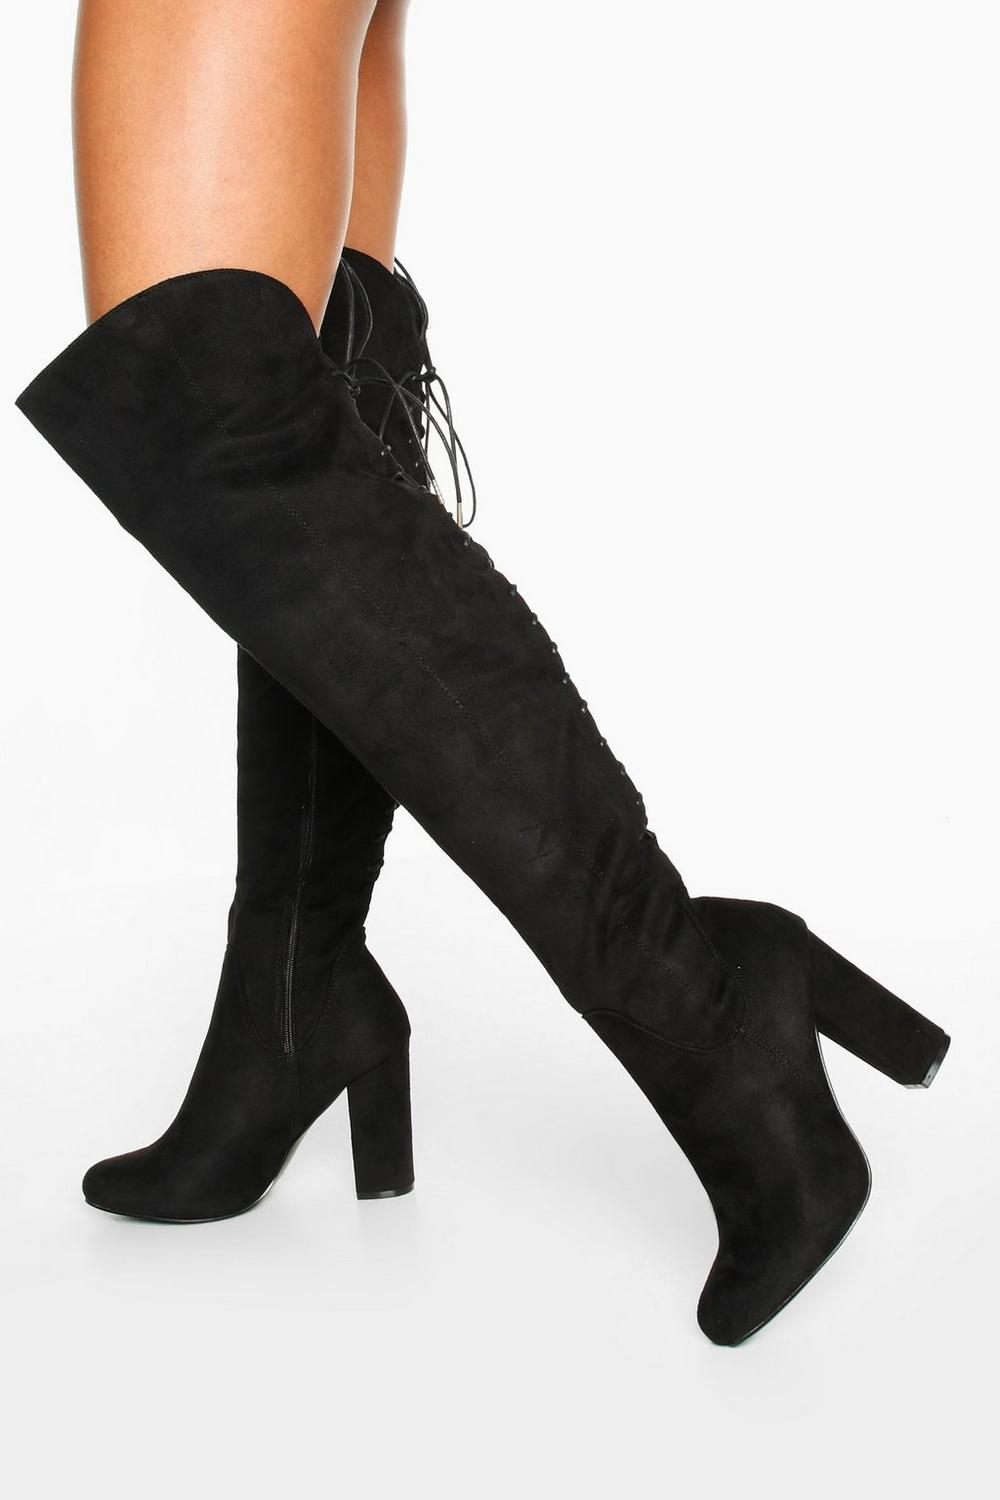 1ce5a1c7d9a Lace Back Block Heel Over The Knee Boots. Hover to zoom